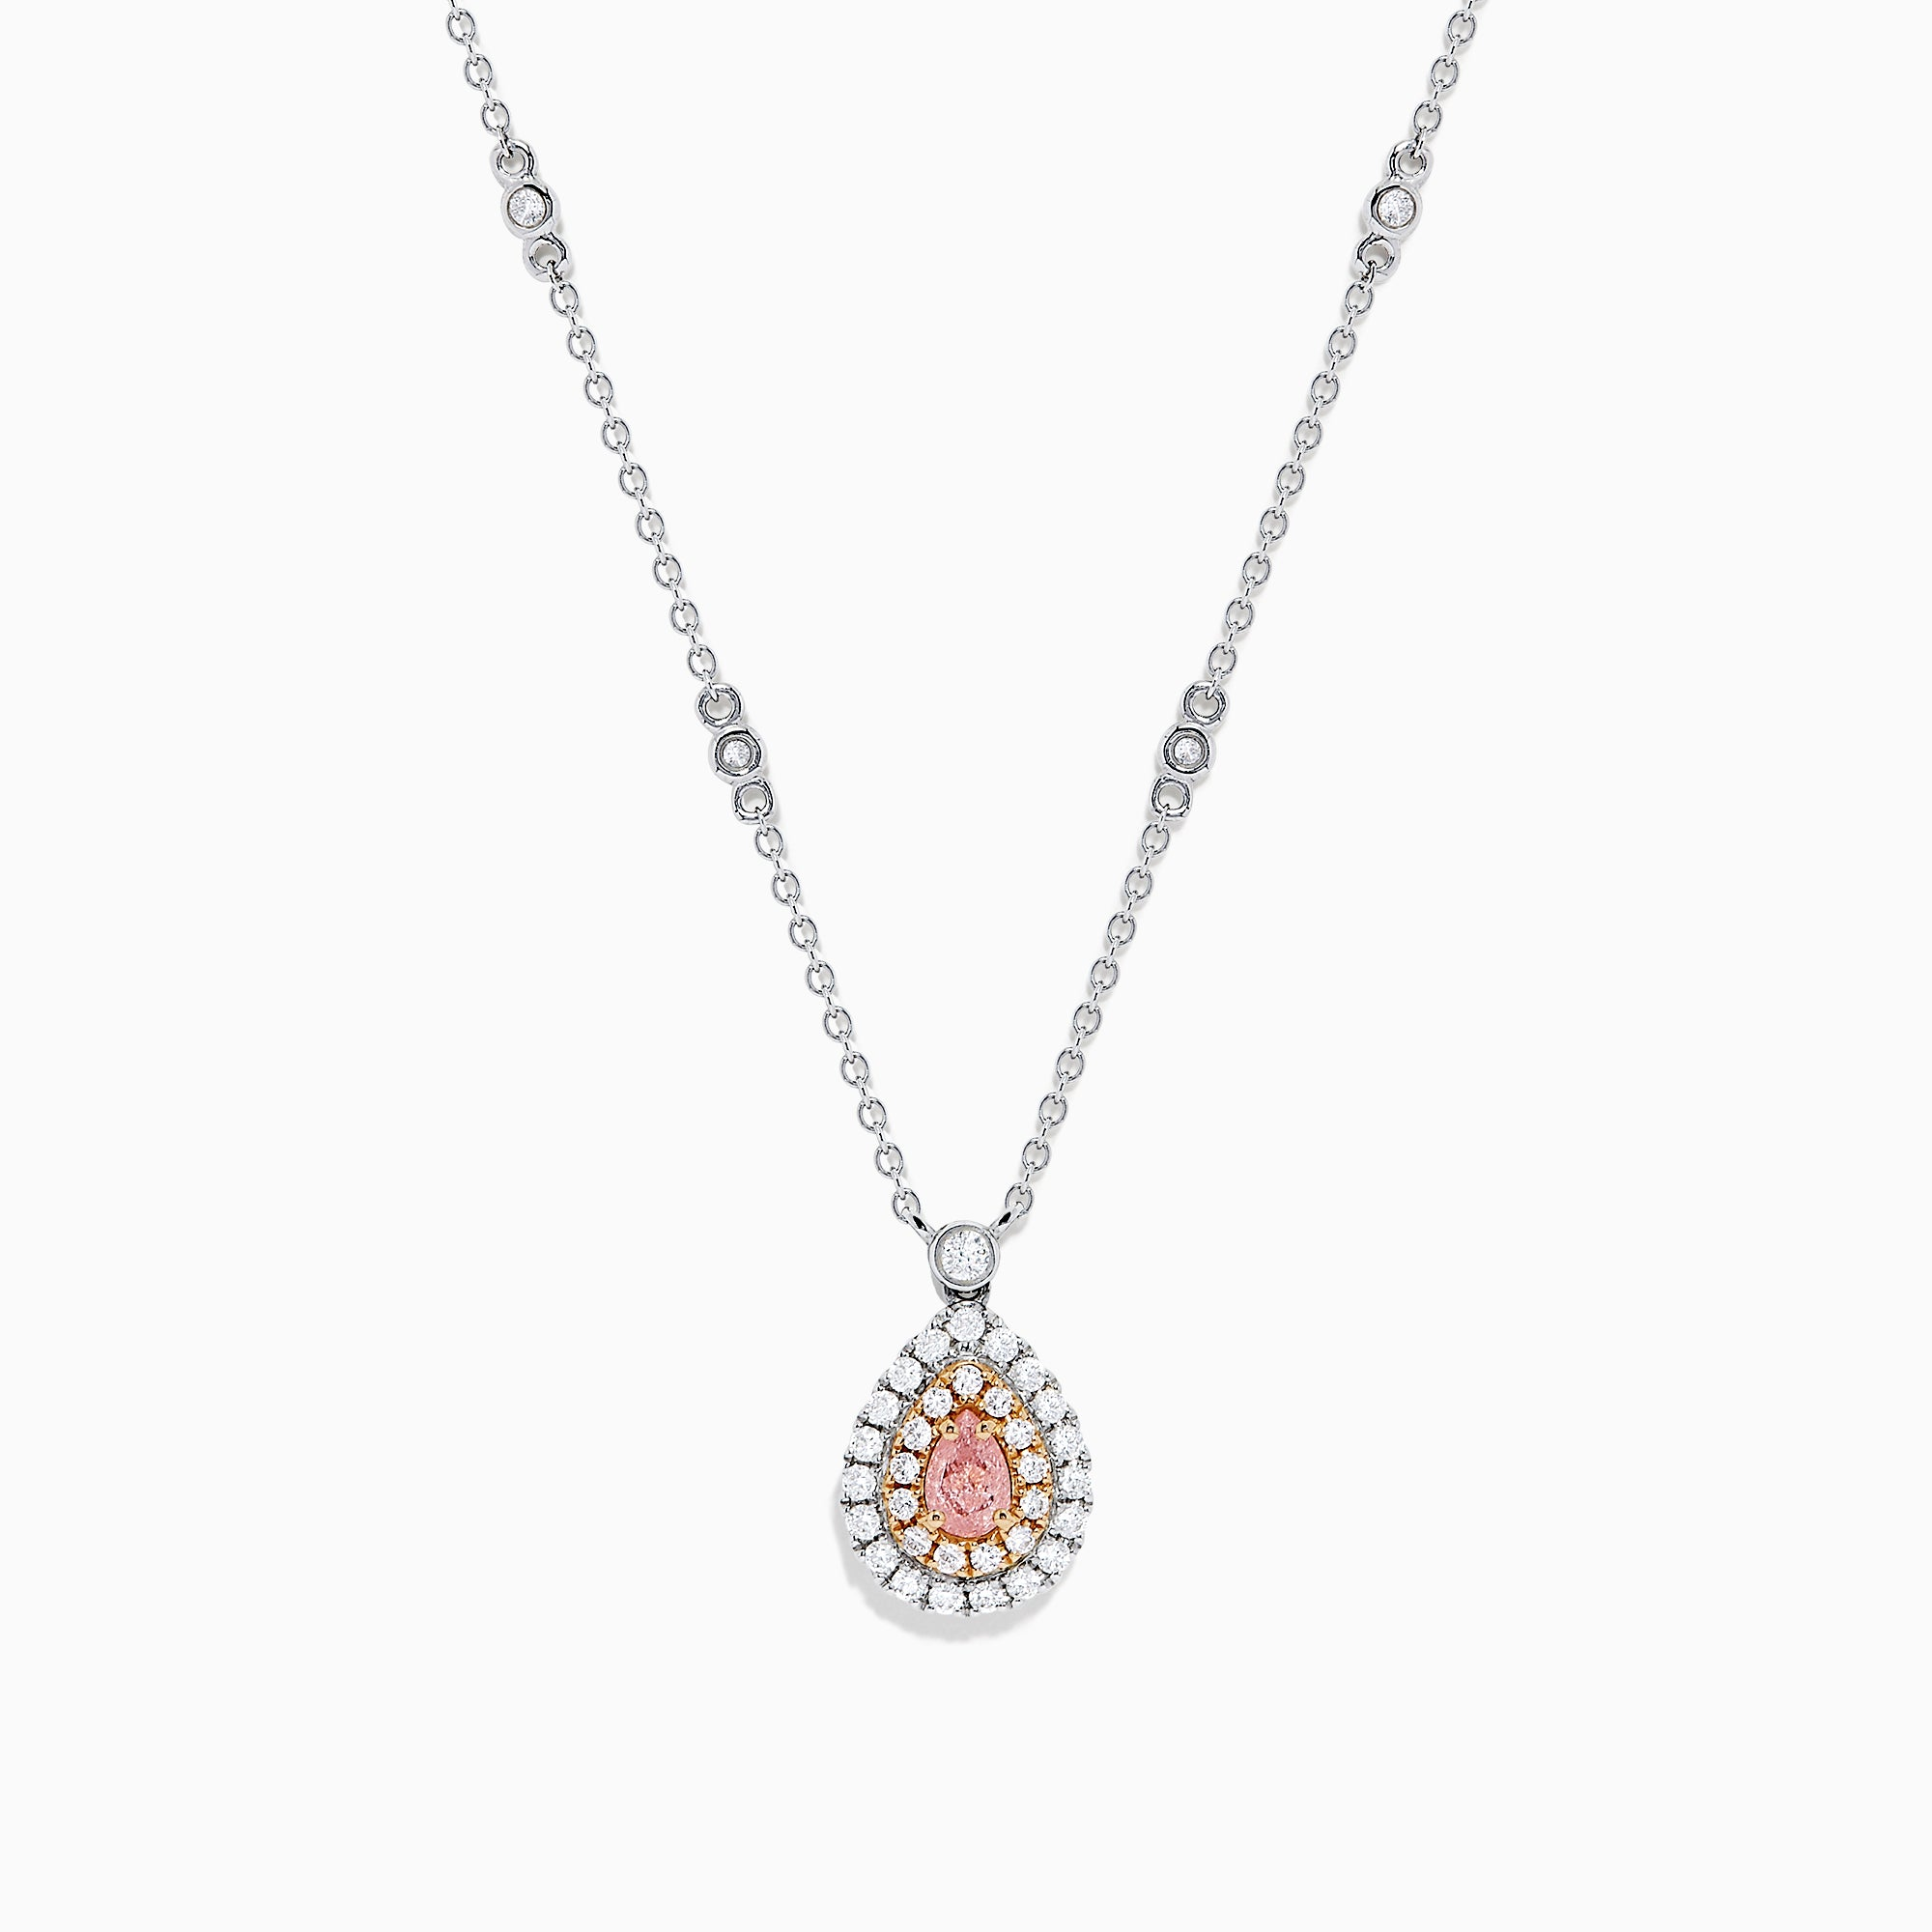 18K Gold White, Pink & Certified Pinkish-Brown Diamond Necklace, 0.70 TCW